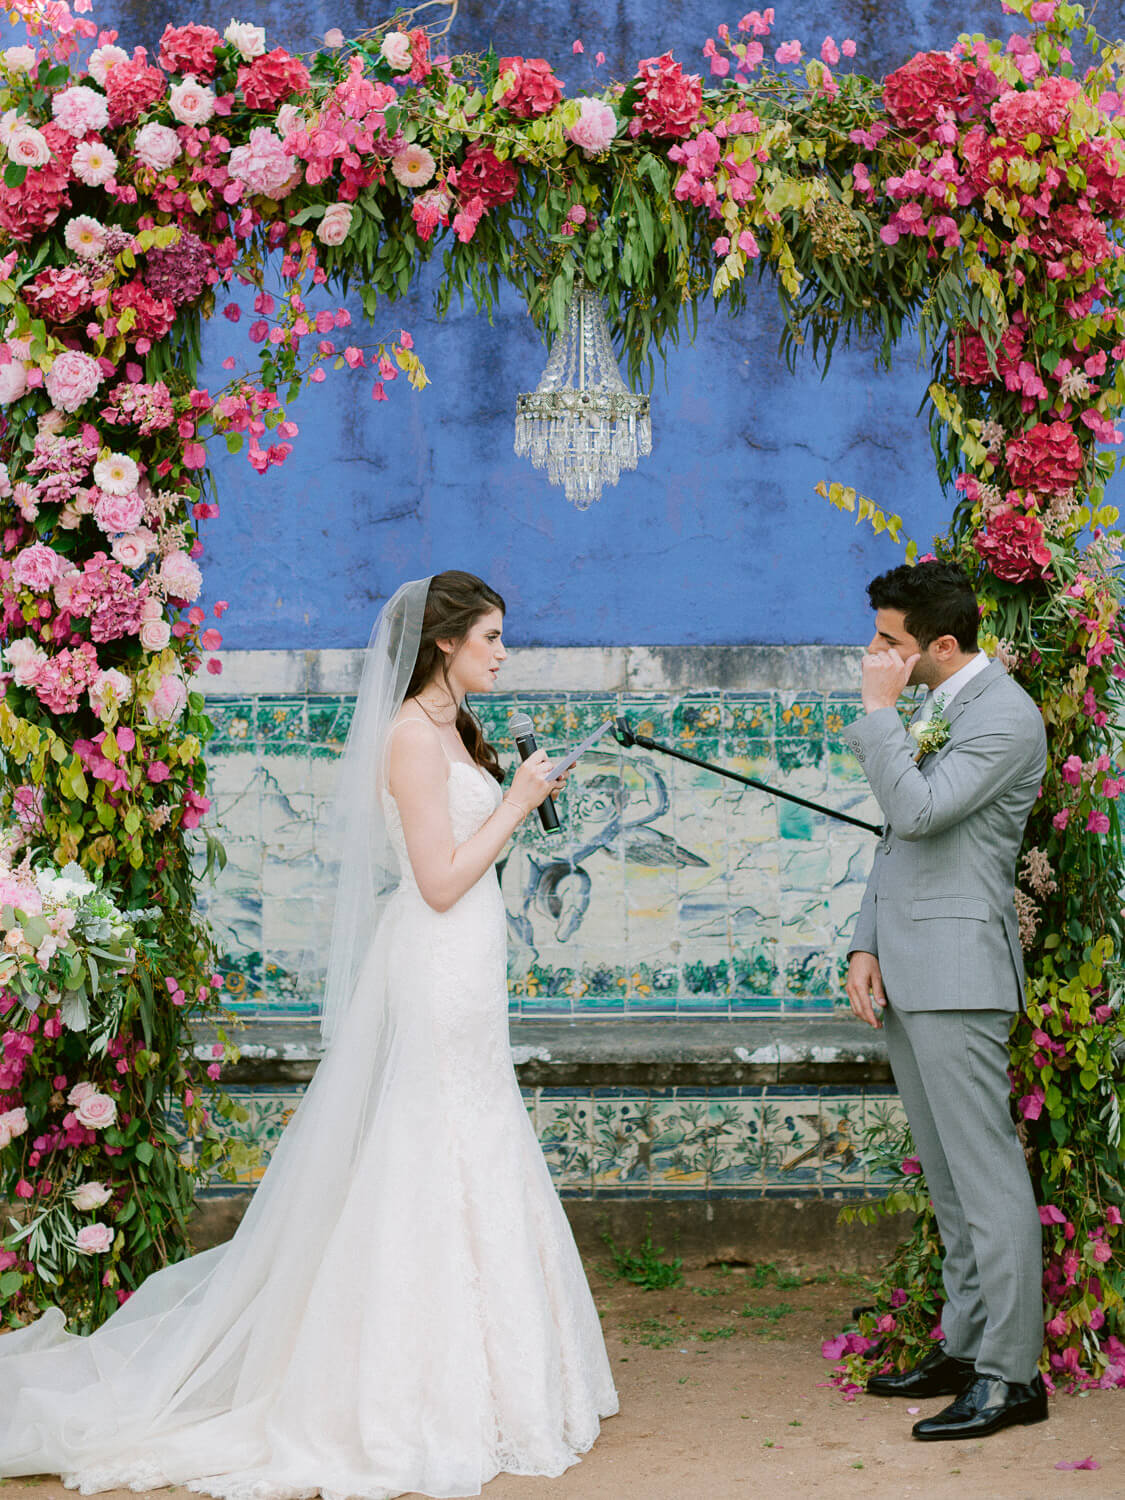 wedding ceremony vow's exchange under bright pink floral arch with crystal chandelier